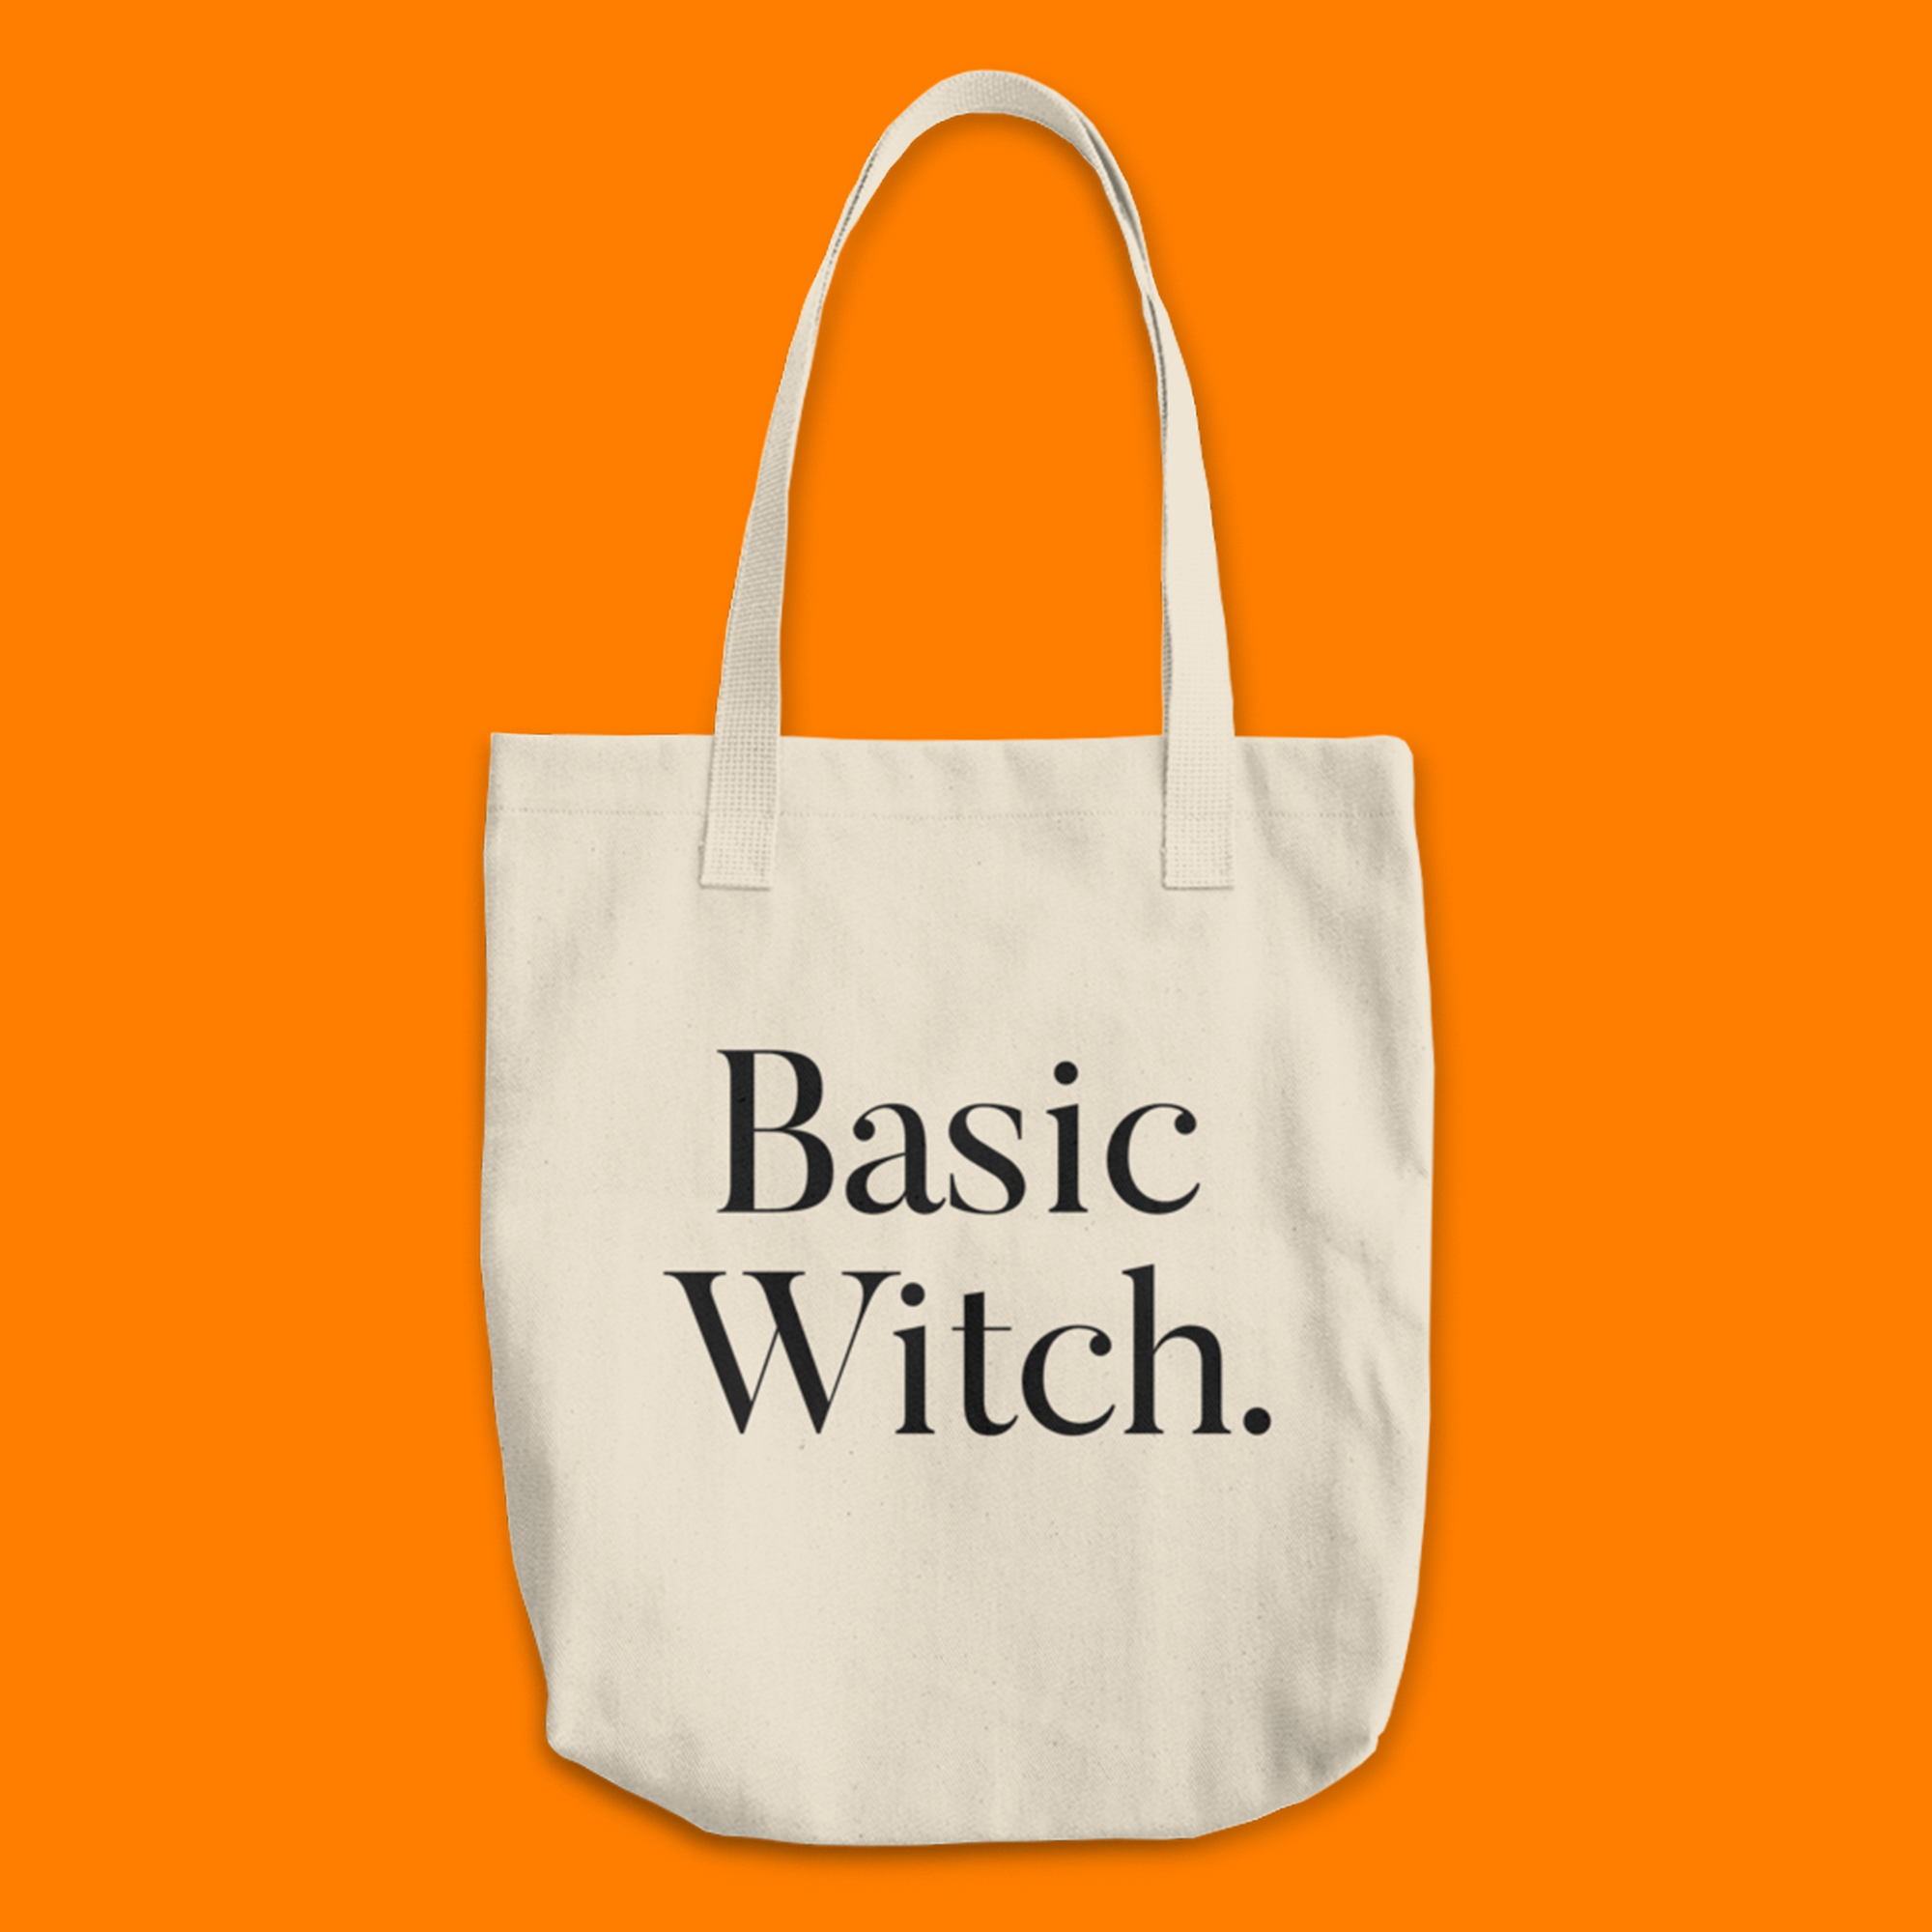 BASIC WITCH TOTE  $25.00